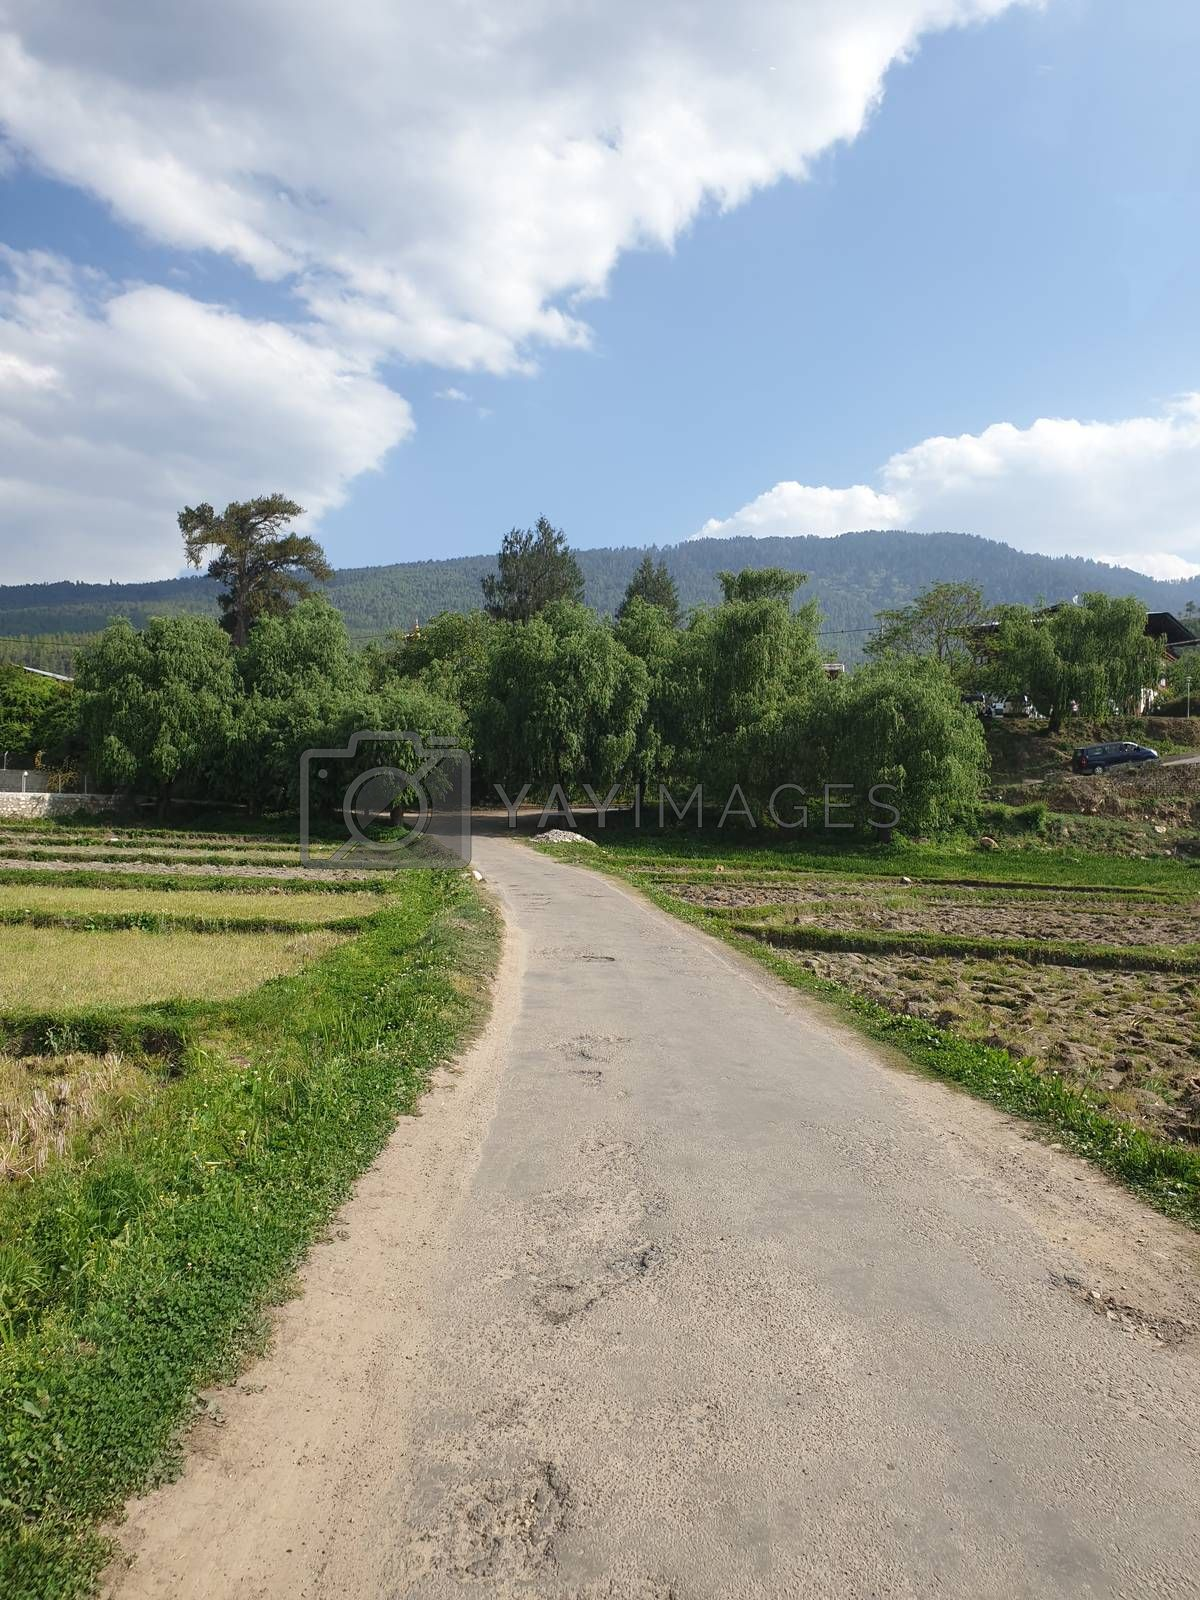 Countryside Road in Himalays by thefinalmiracle